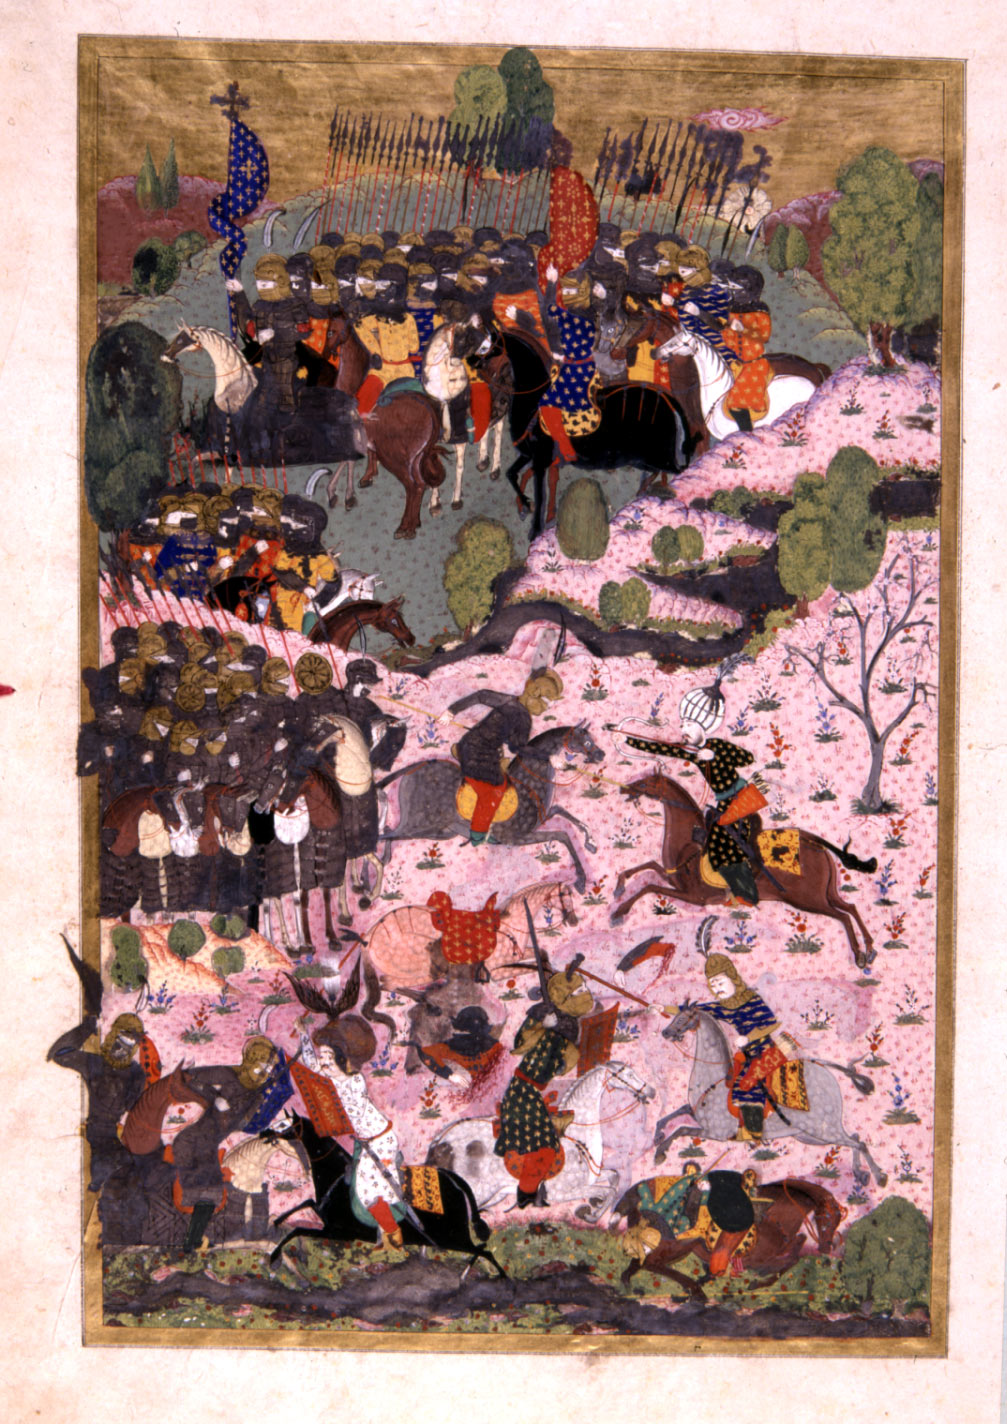 suleymanname1526-single_combat_at_the_battle_of_mohacs.jpg